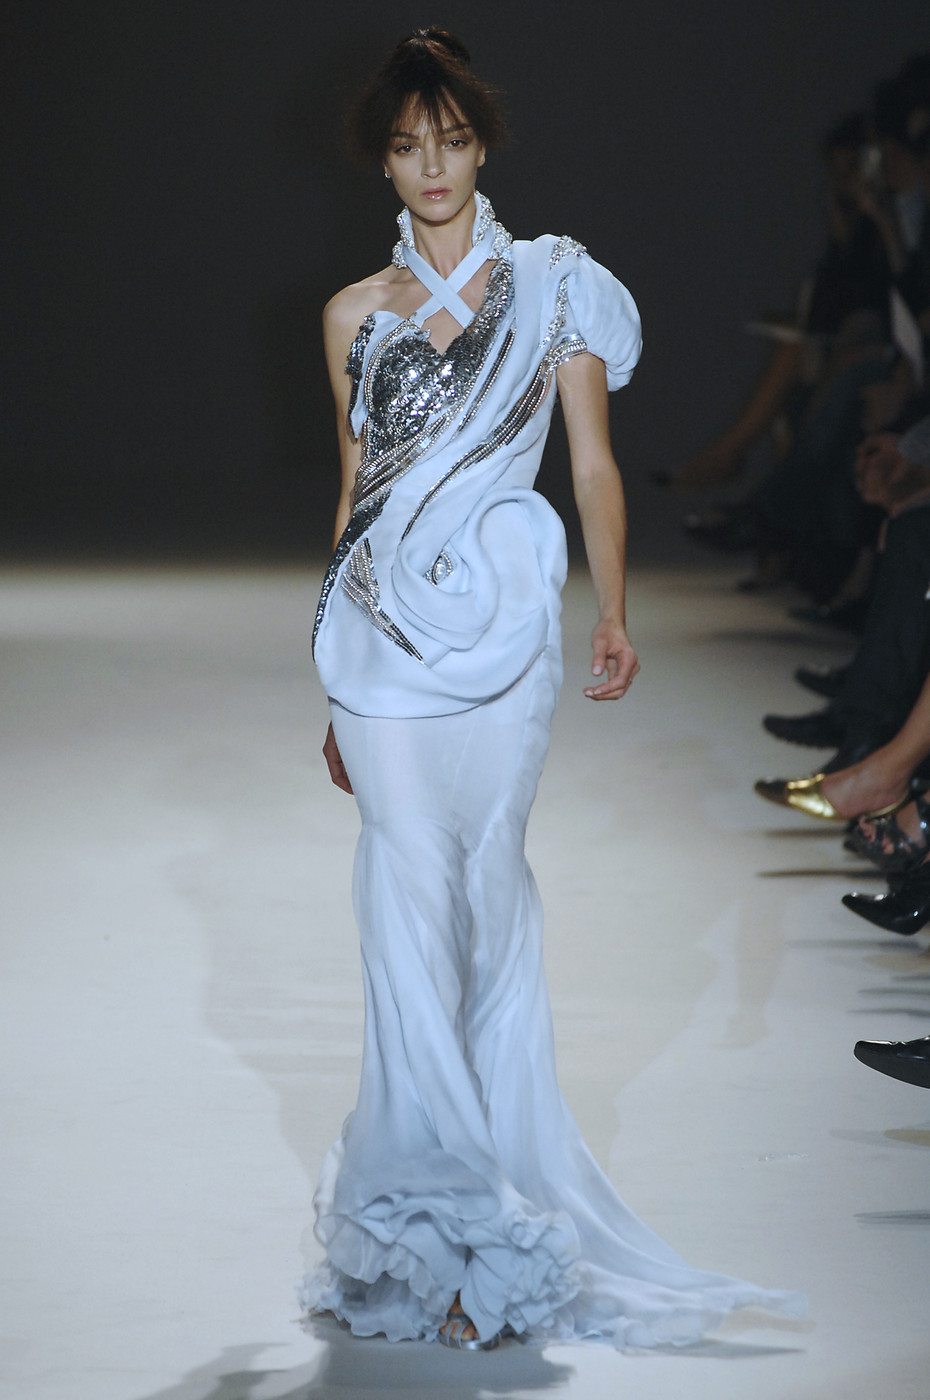 Givenchy haute couture by Riccardo Tisci